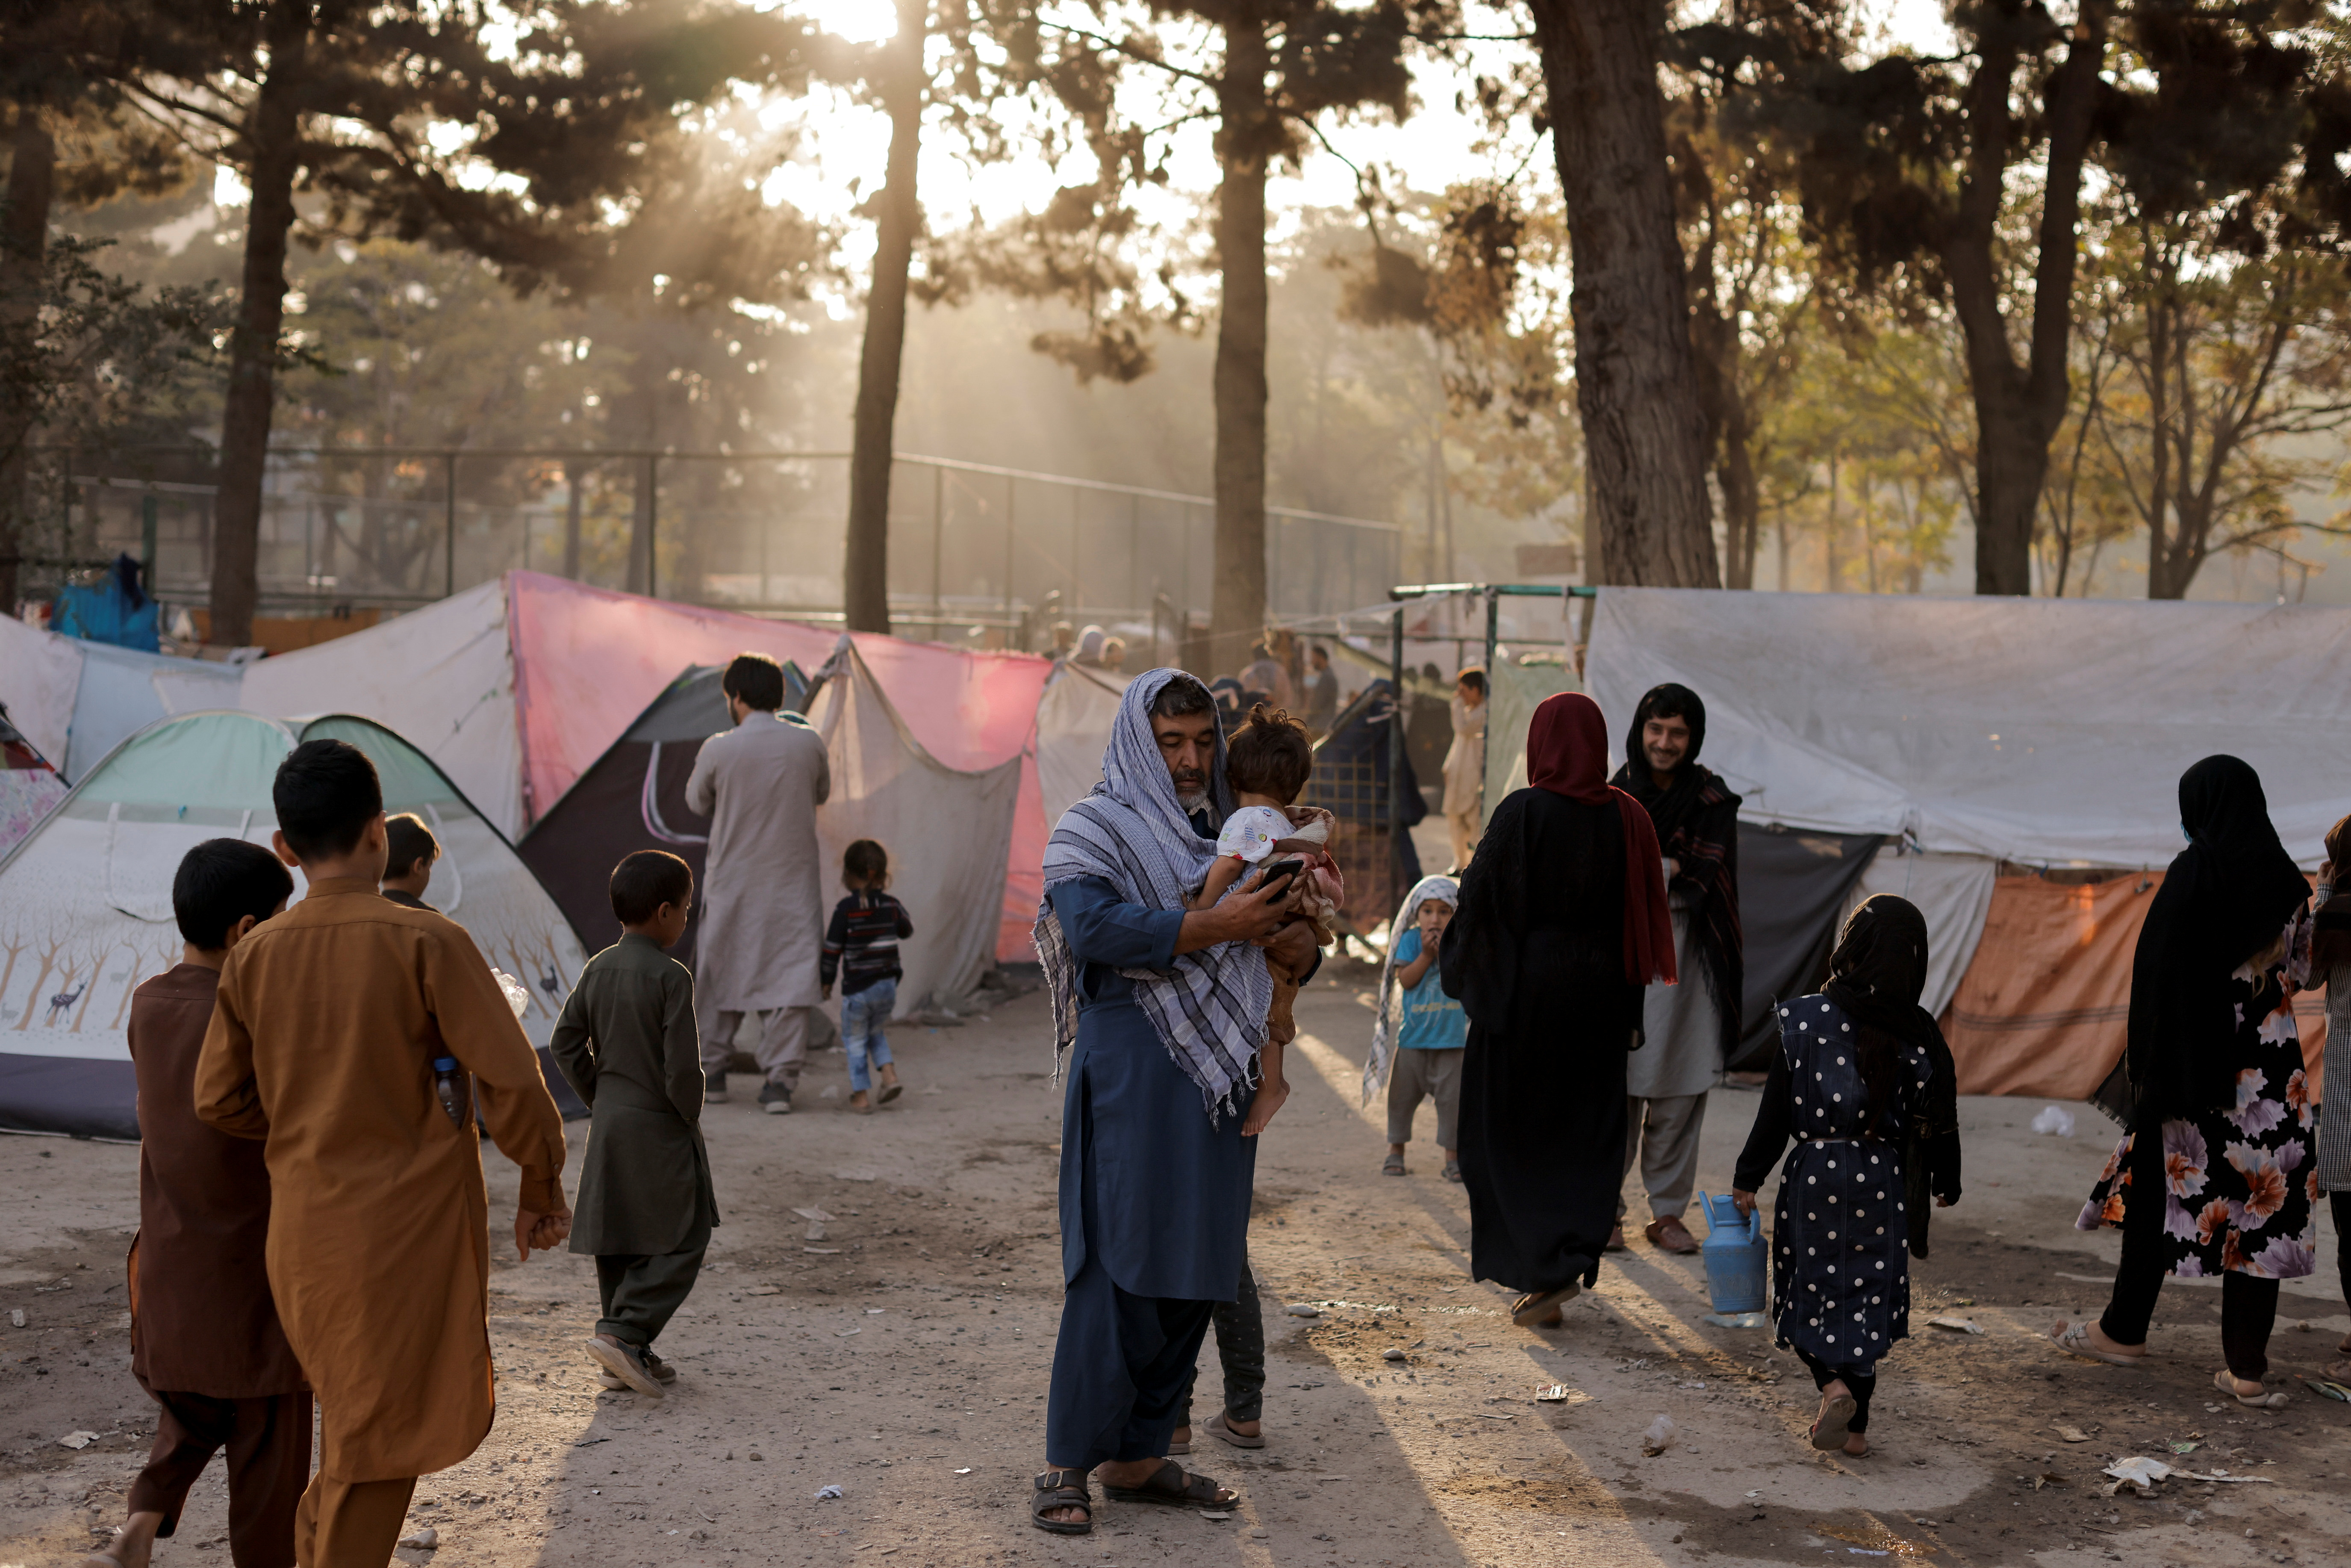 Displaced Afghan families, who flee the violence in their provinces, stand near tents in a makeshift shelter at Shahr-e Naw park, in Kabul, Afghanistan October 4, 2021. REUTERS/Jorge Silva